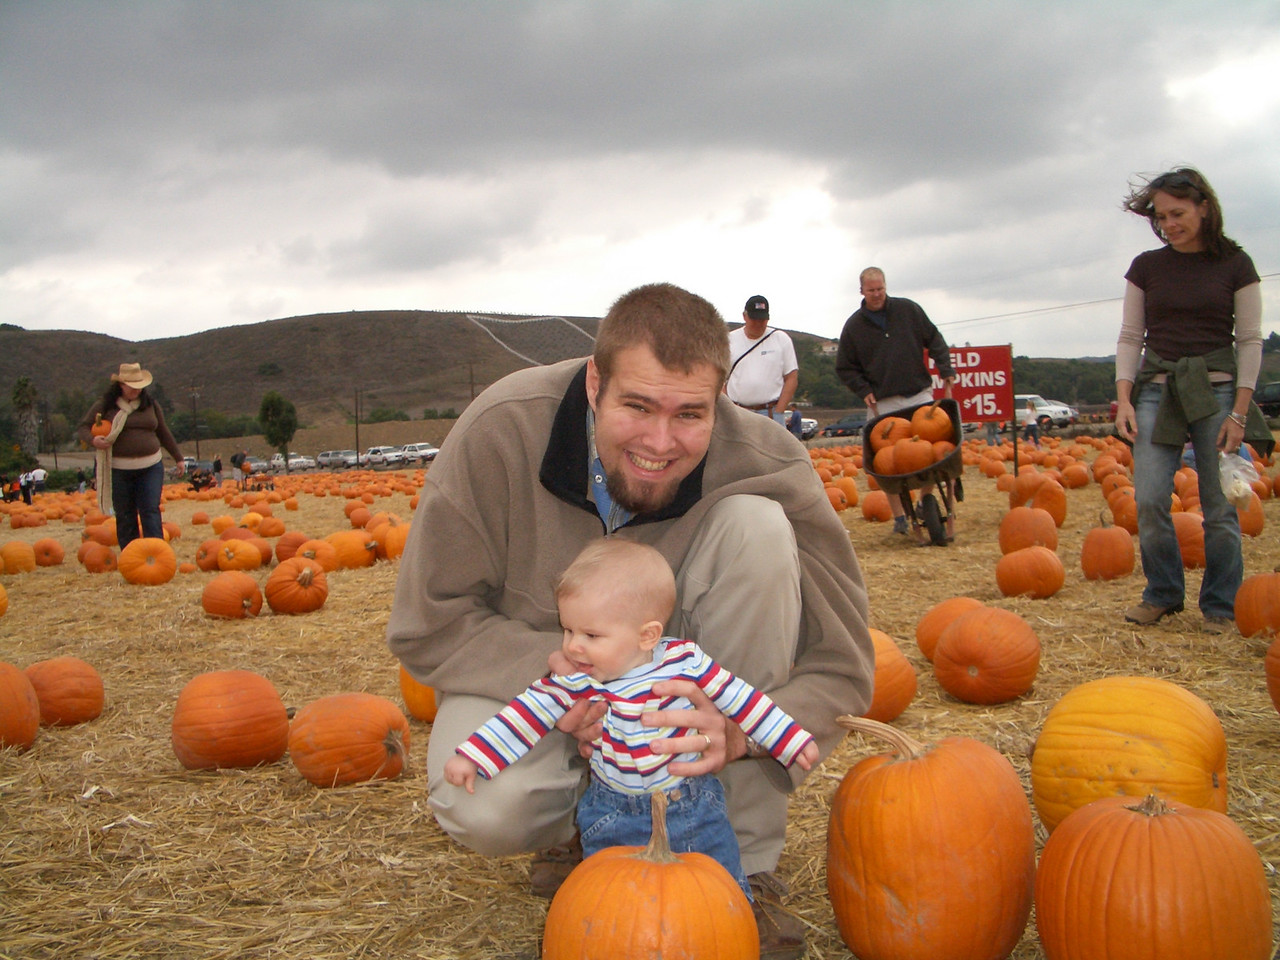 How about that pumpkin over there dada?